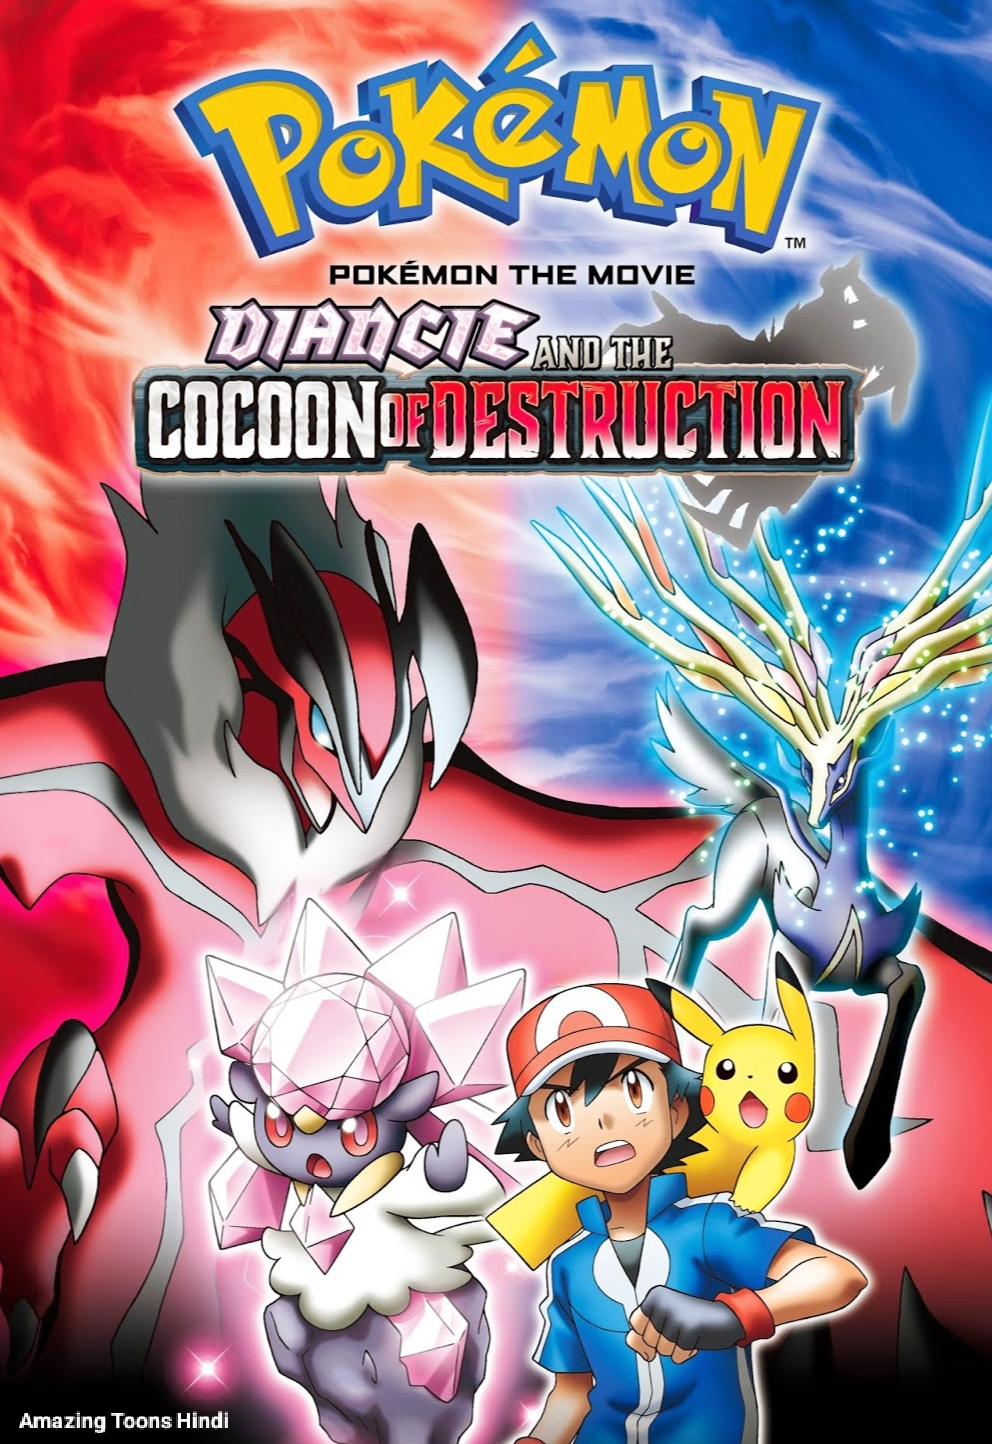 Pokemon Movie 17 Diancie And The Cocoon Of Destruction Full Movie